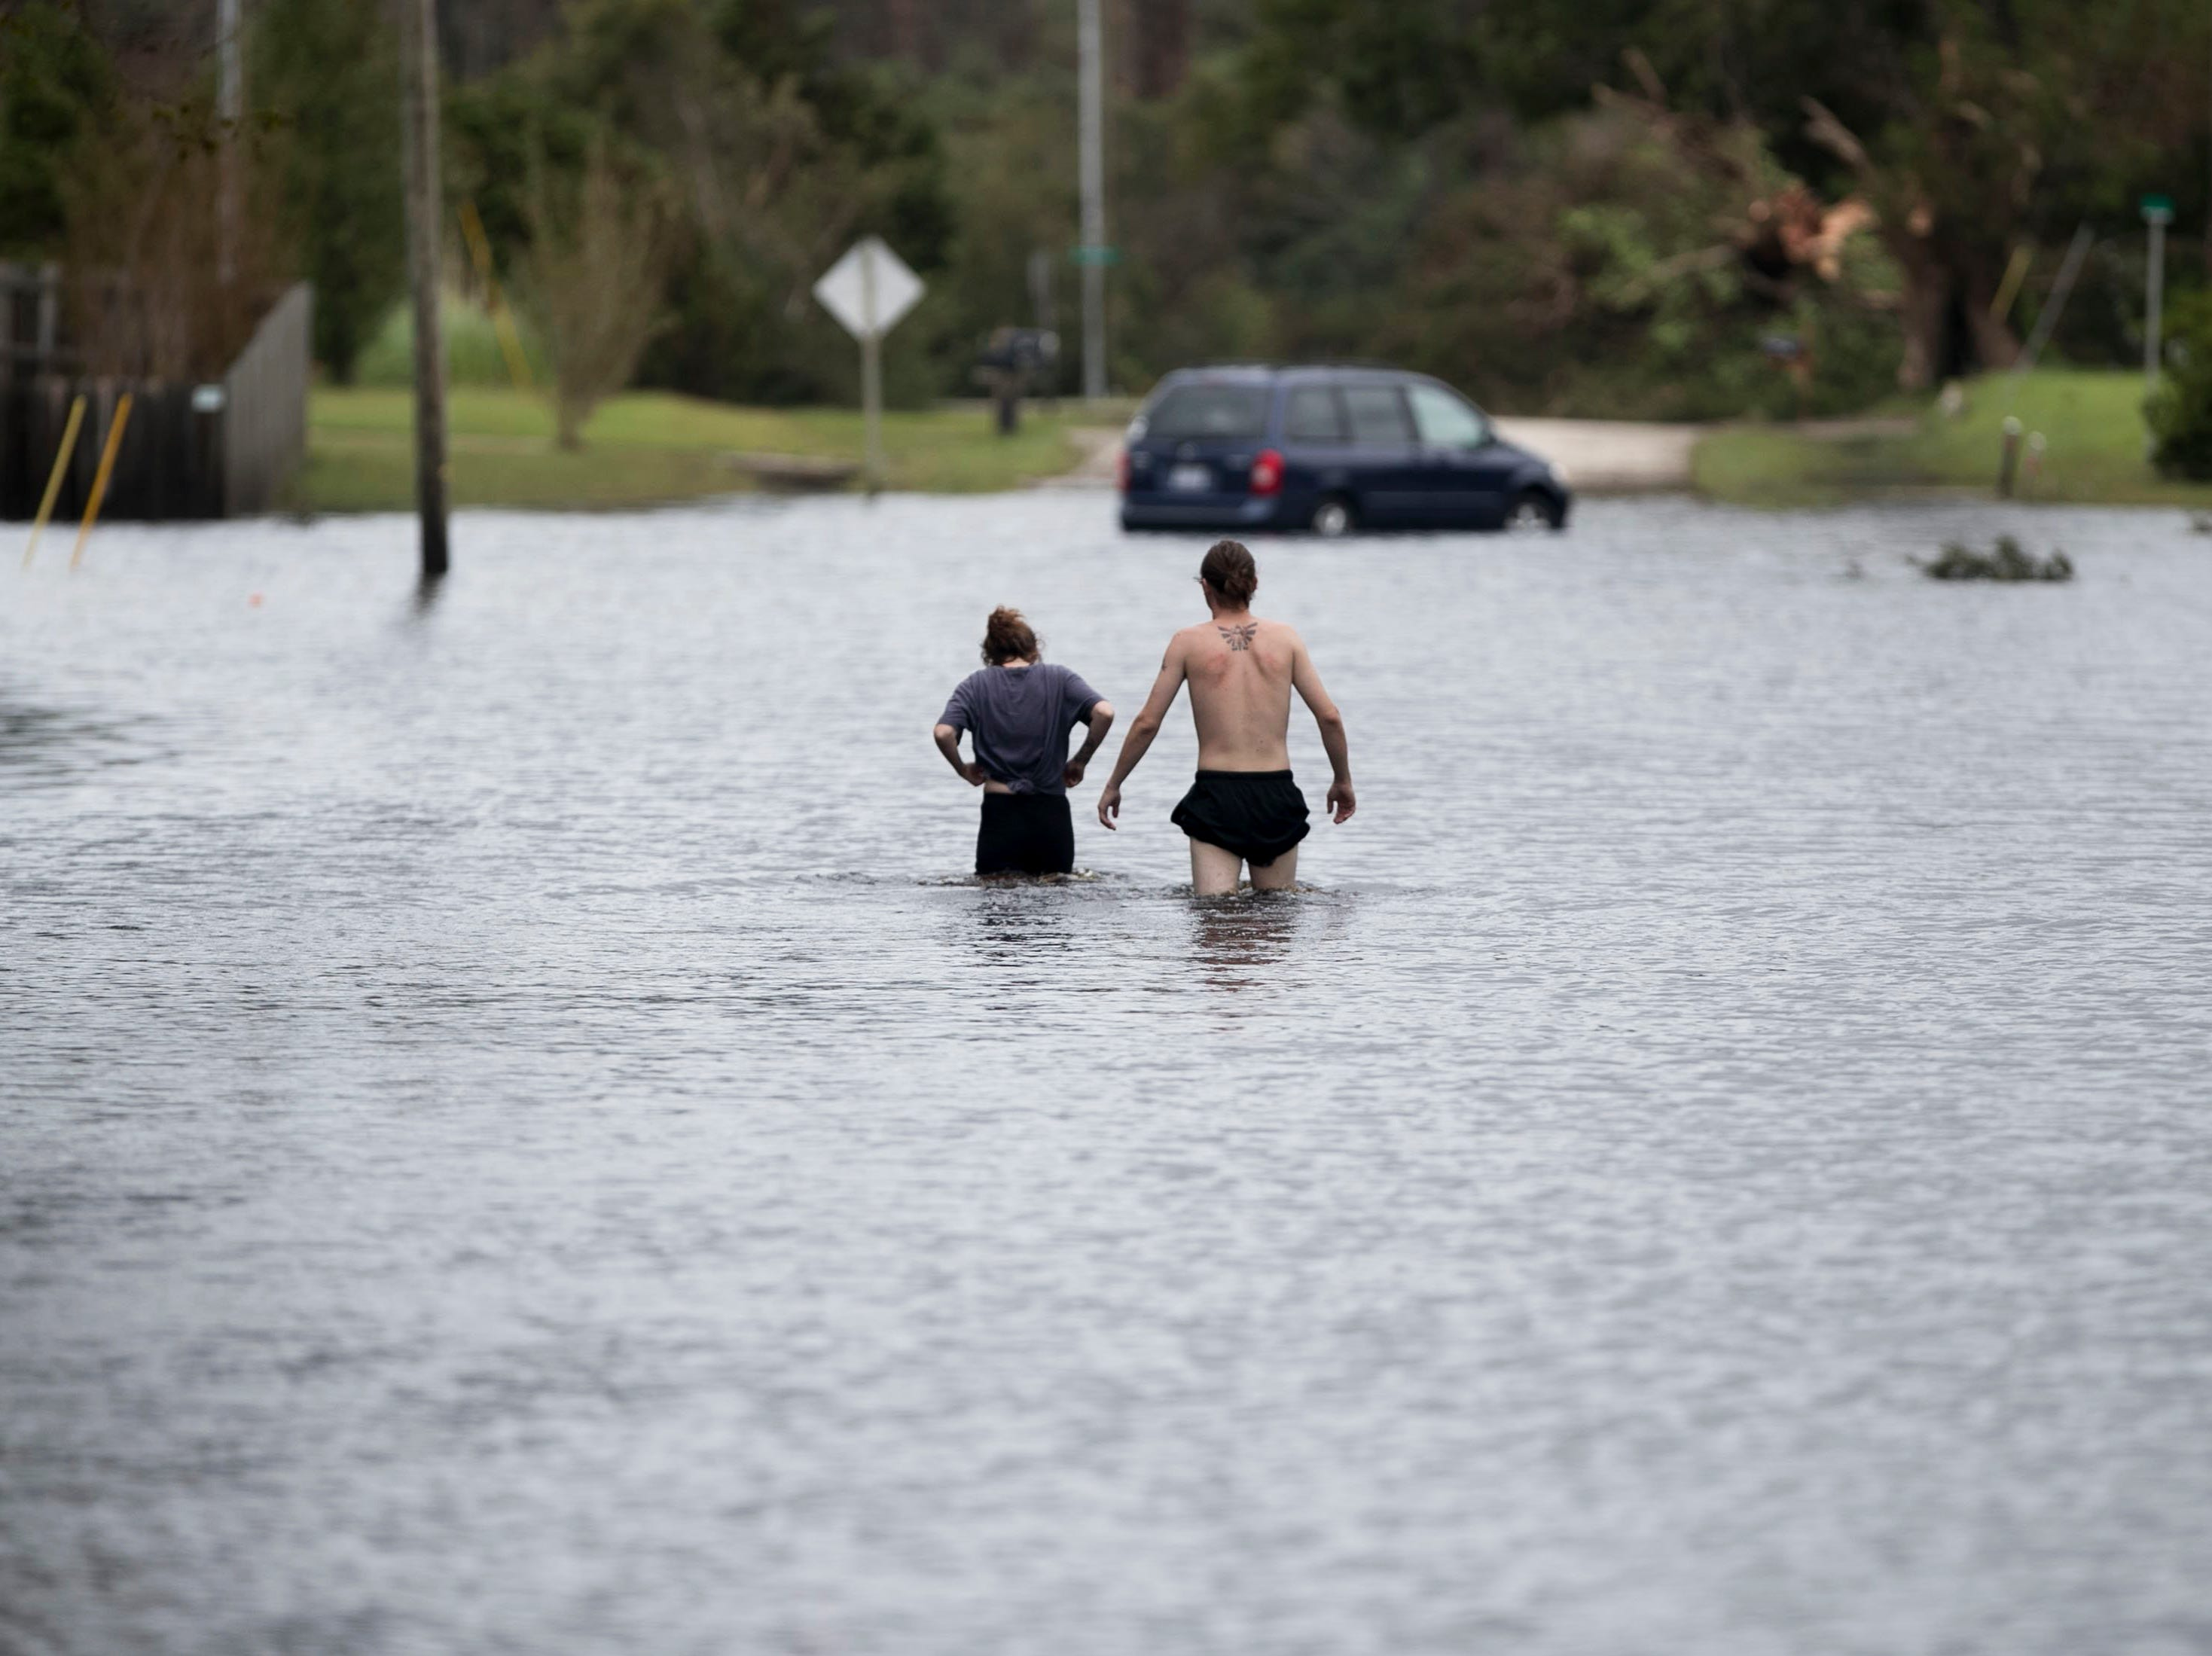 Amanda Mason and Zack McWilliams walk through waist-deep water to take a look at their flooded home off of Nine Foot Road on Sunday, Sept. 16, 2018, in Newport, N.C. They were displaced on Friday night after fast-rising water entered their home from a tributary of the Newport River.